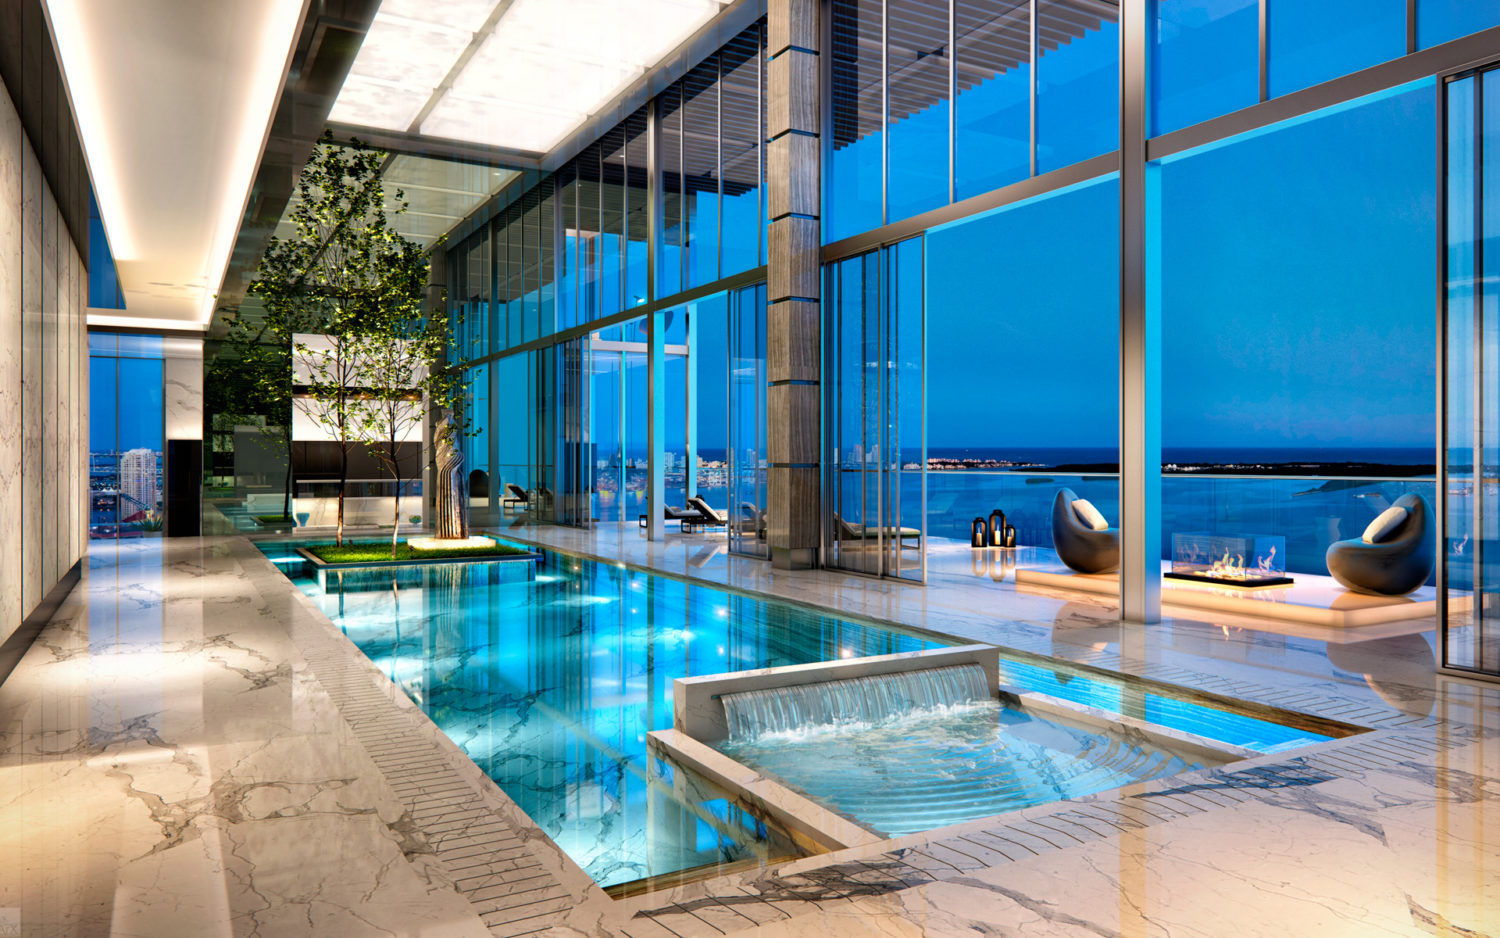 Miami hosts the most exclusive residential properties to invest in